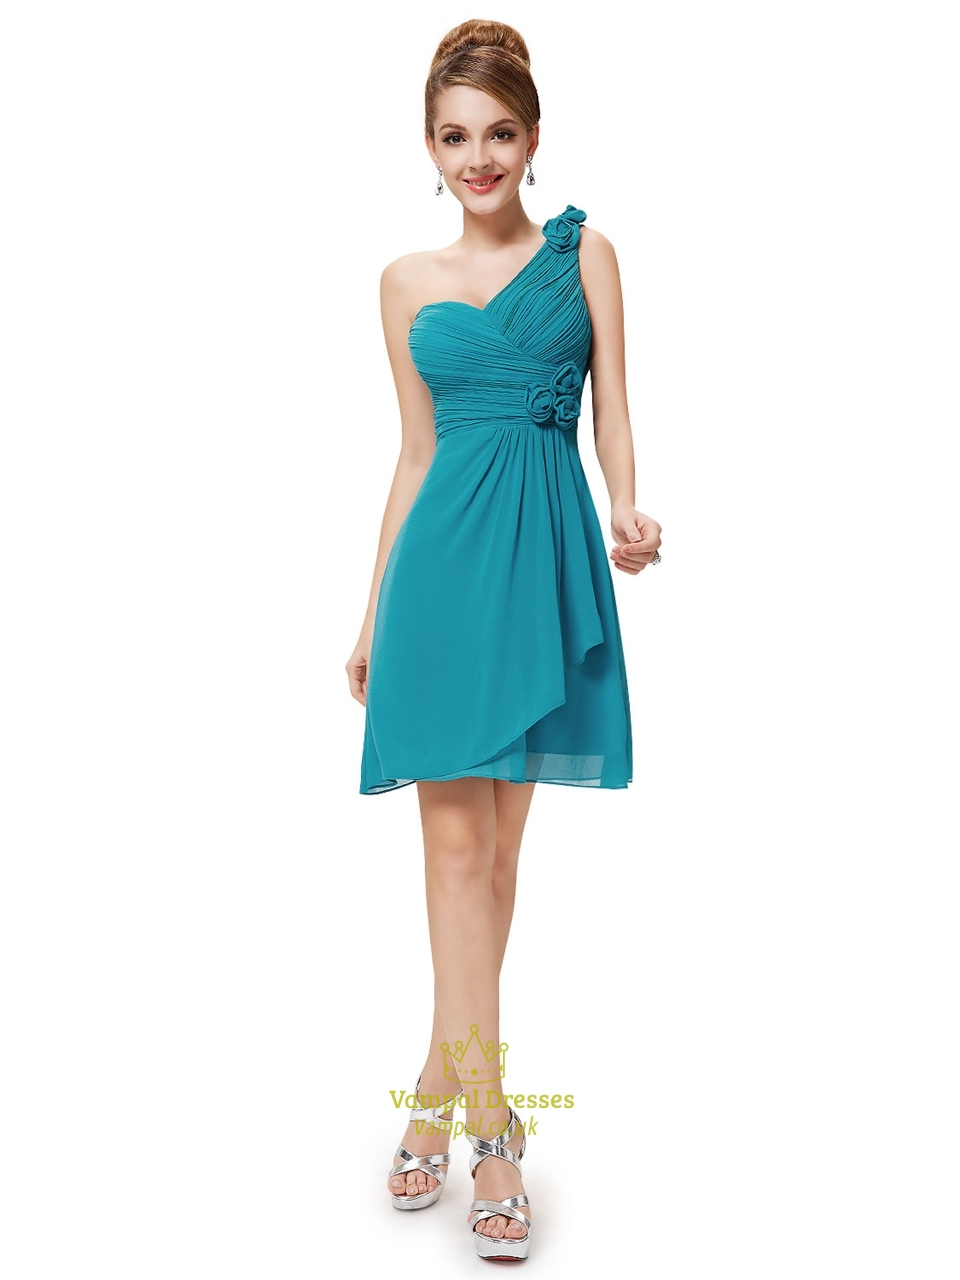 Teal blue colored cocktail dresses fancy bridesmaid dresses teal blue colored cocktail dresses teal short chiffon bridesmaid dressesshort teal bridesmaid dresses ombrellifo Choice Image